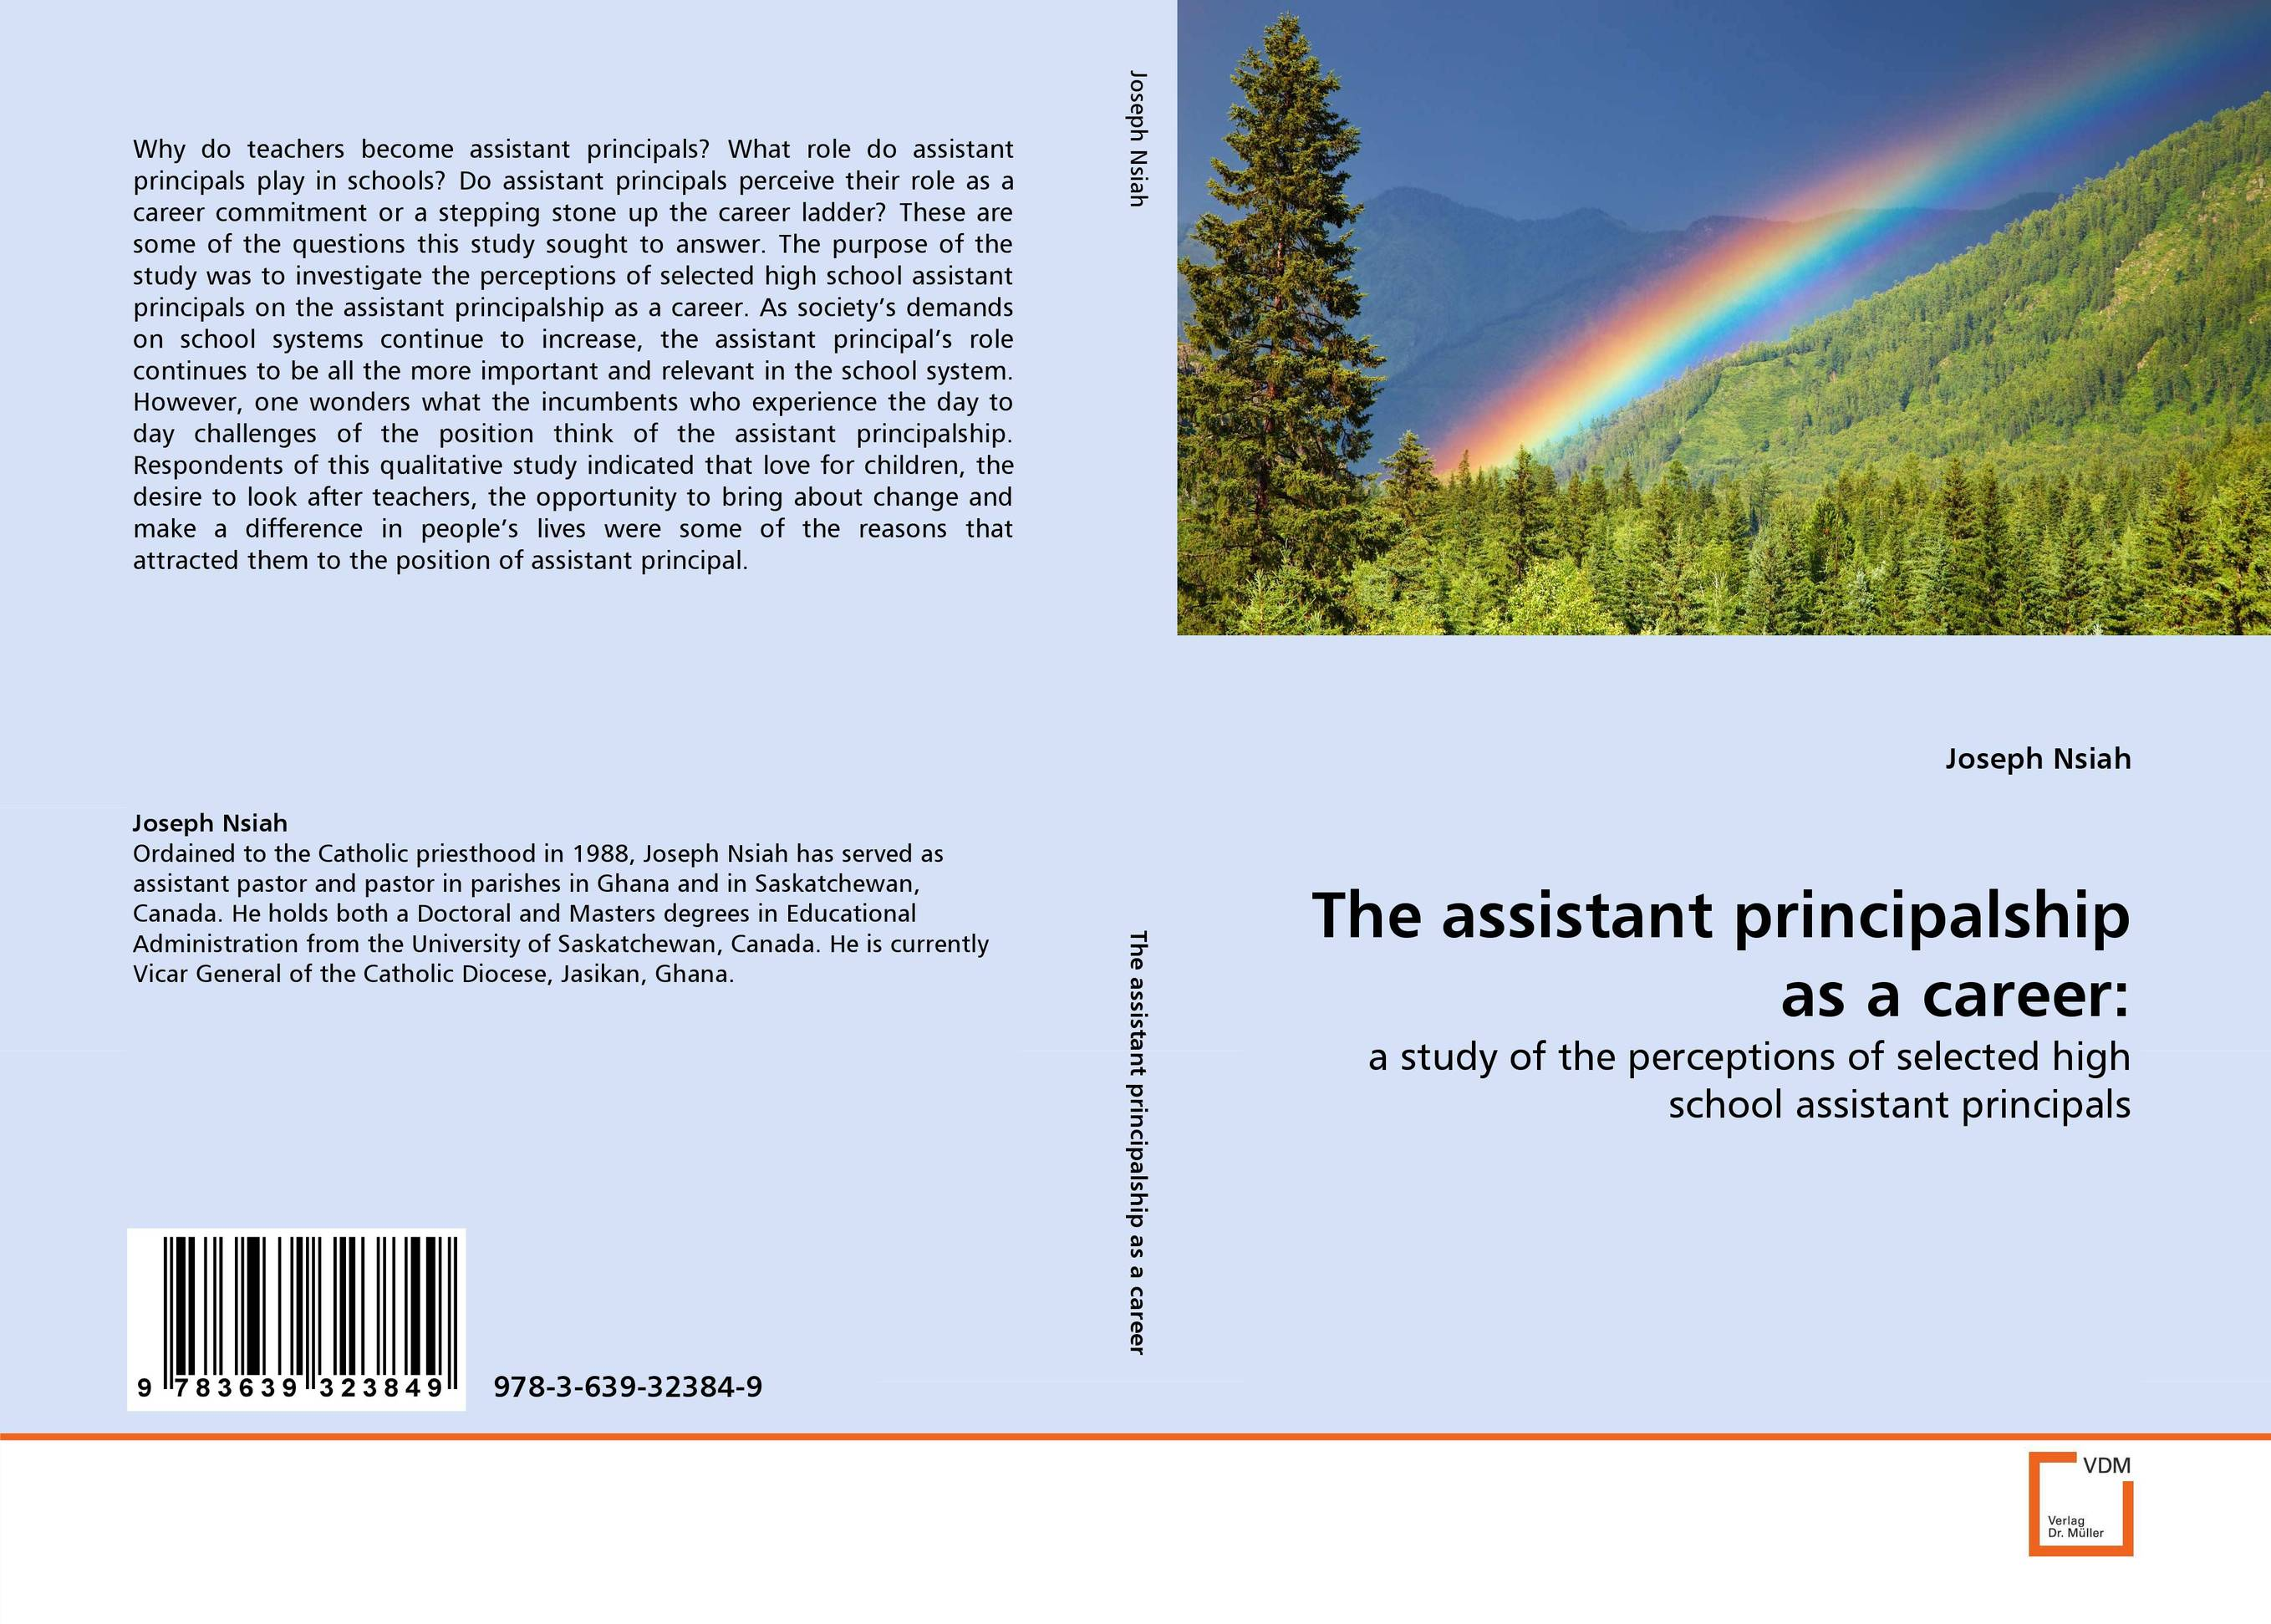 The assistant principalship as a career: the role of evaluation as a mechanism for advancing principal practice